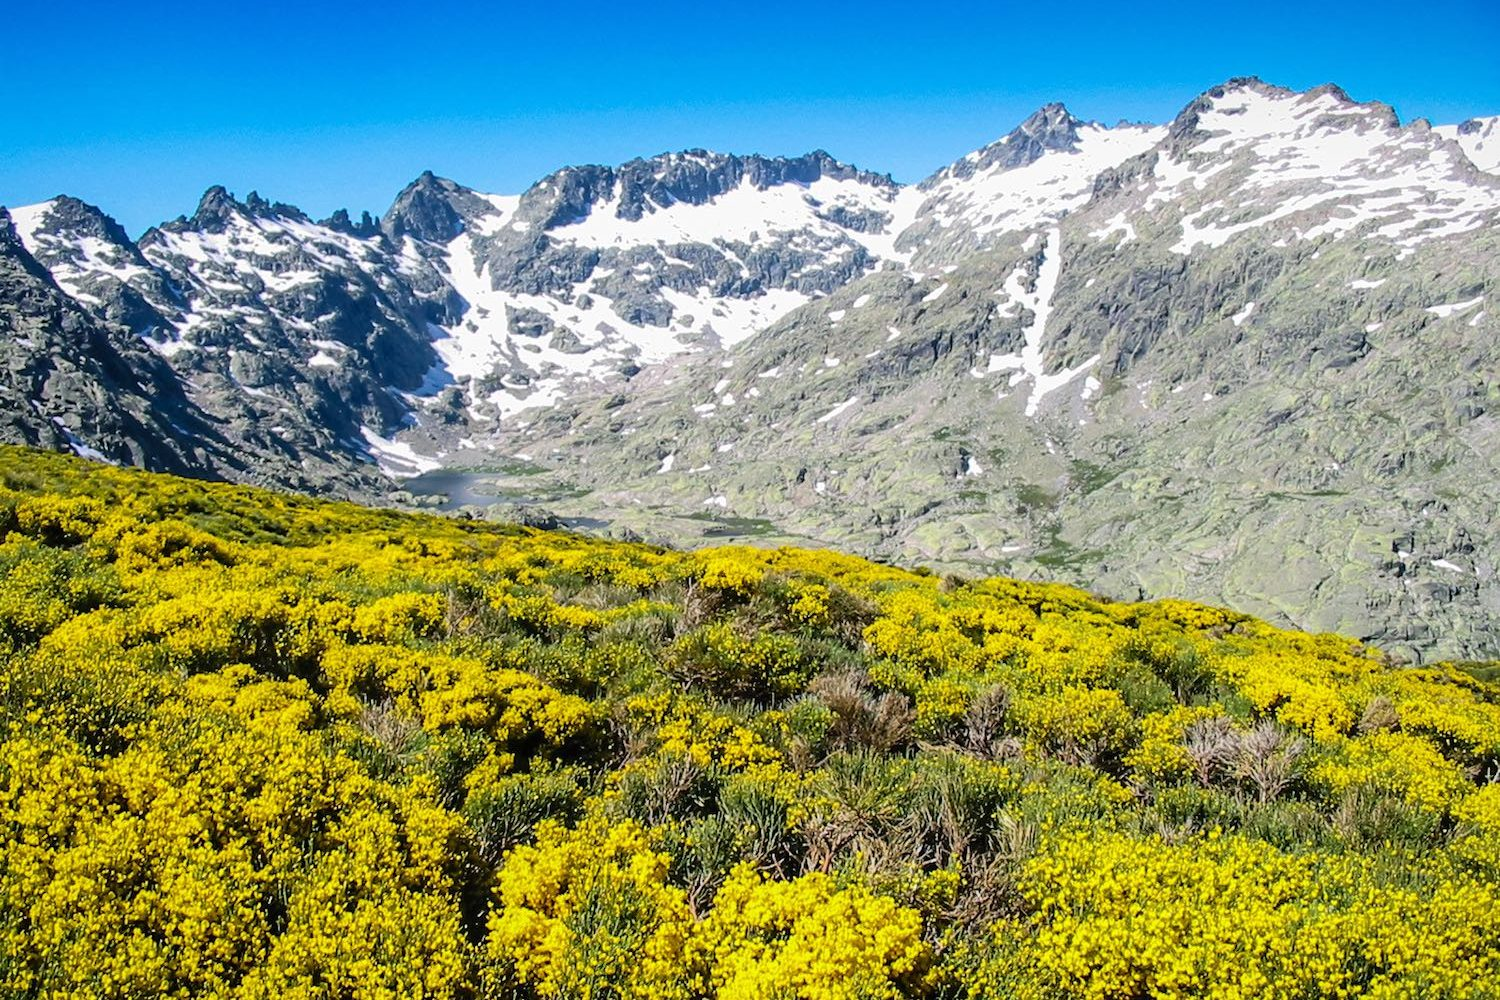 Circo de Gredos with blooming flowers